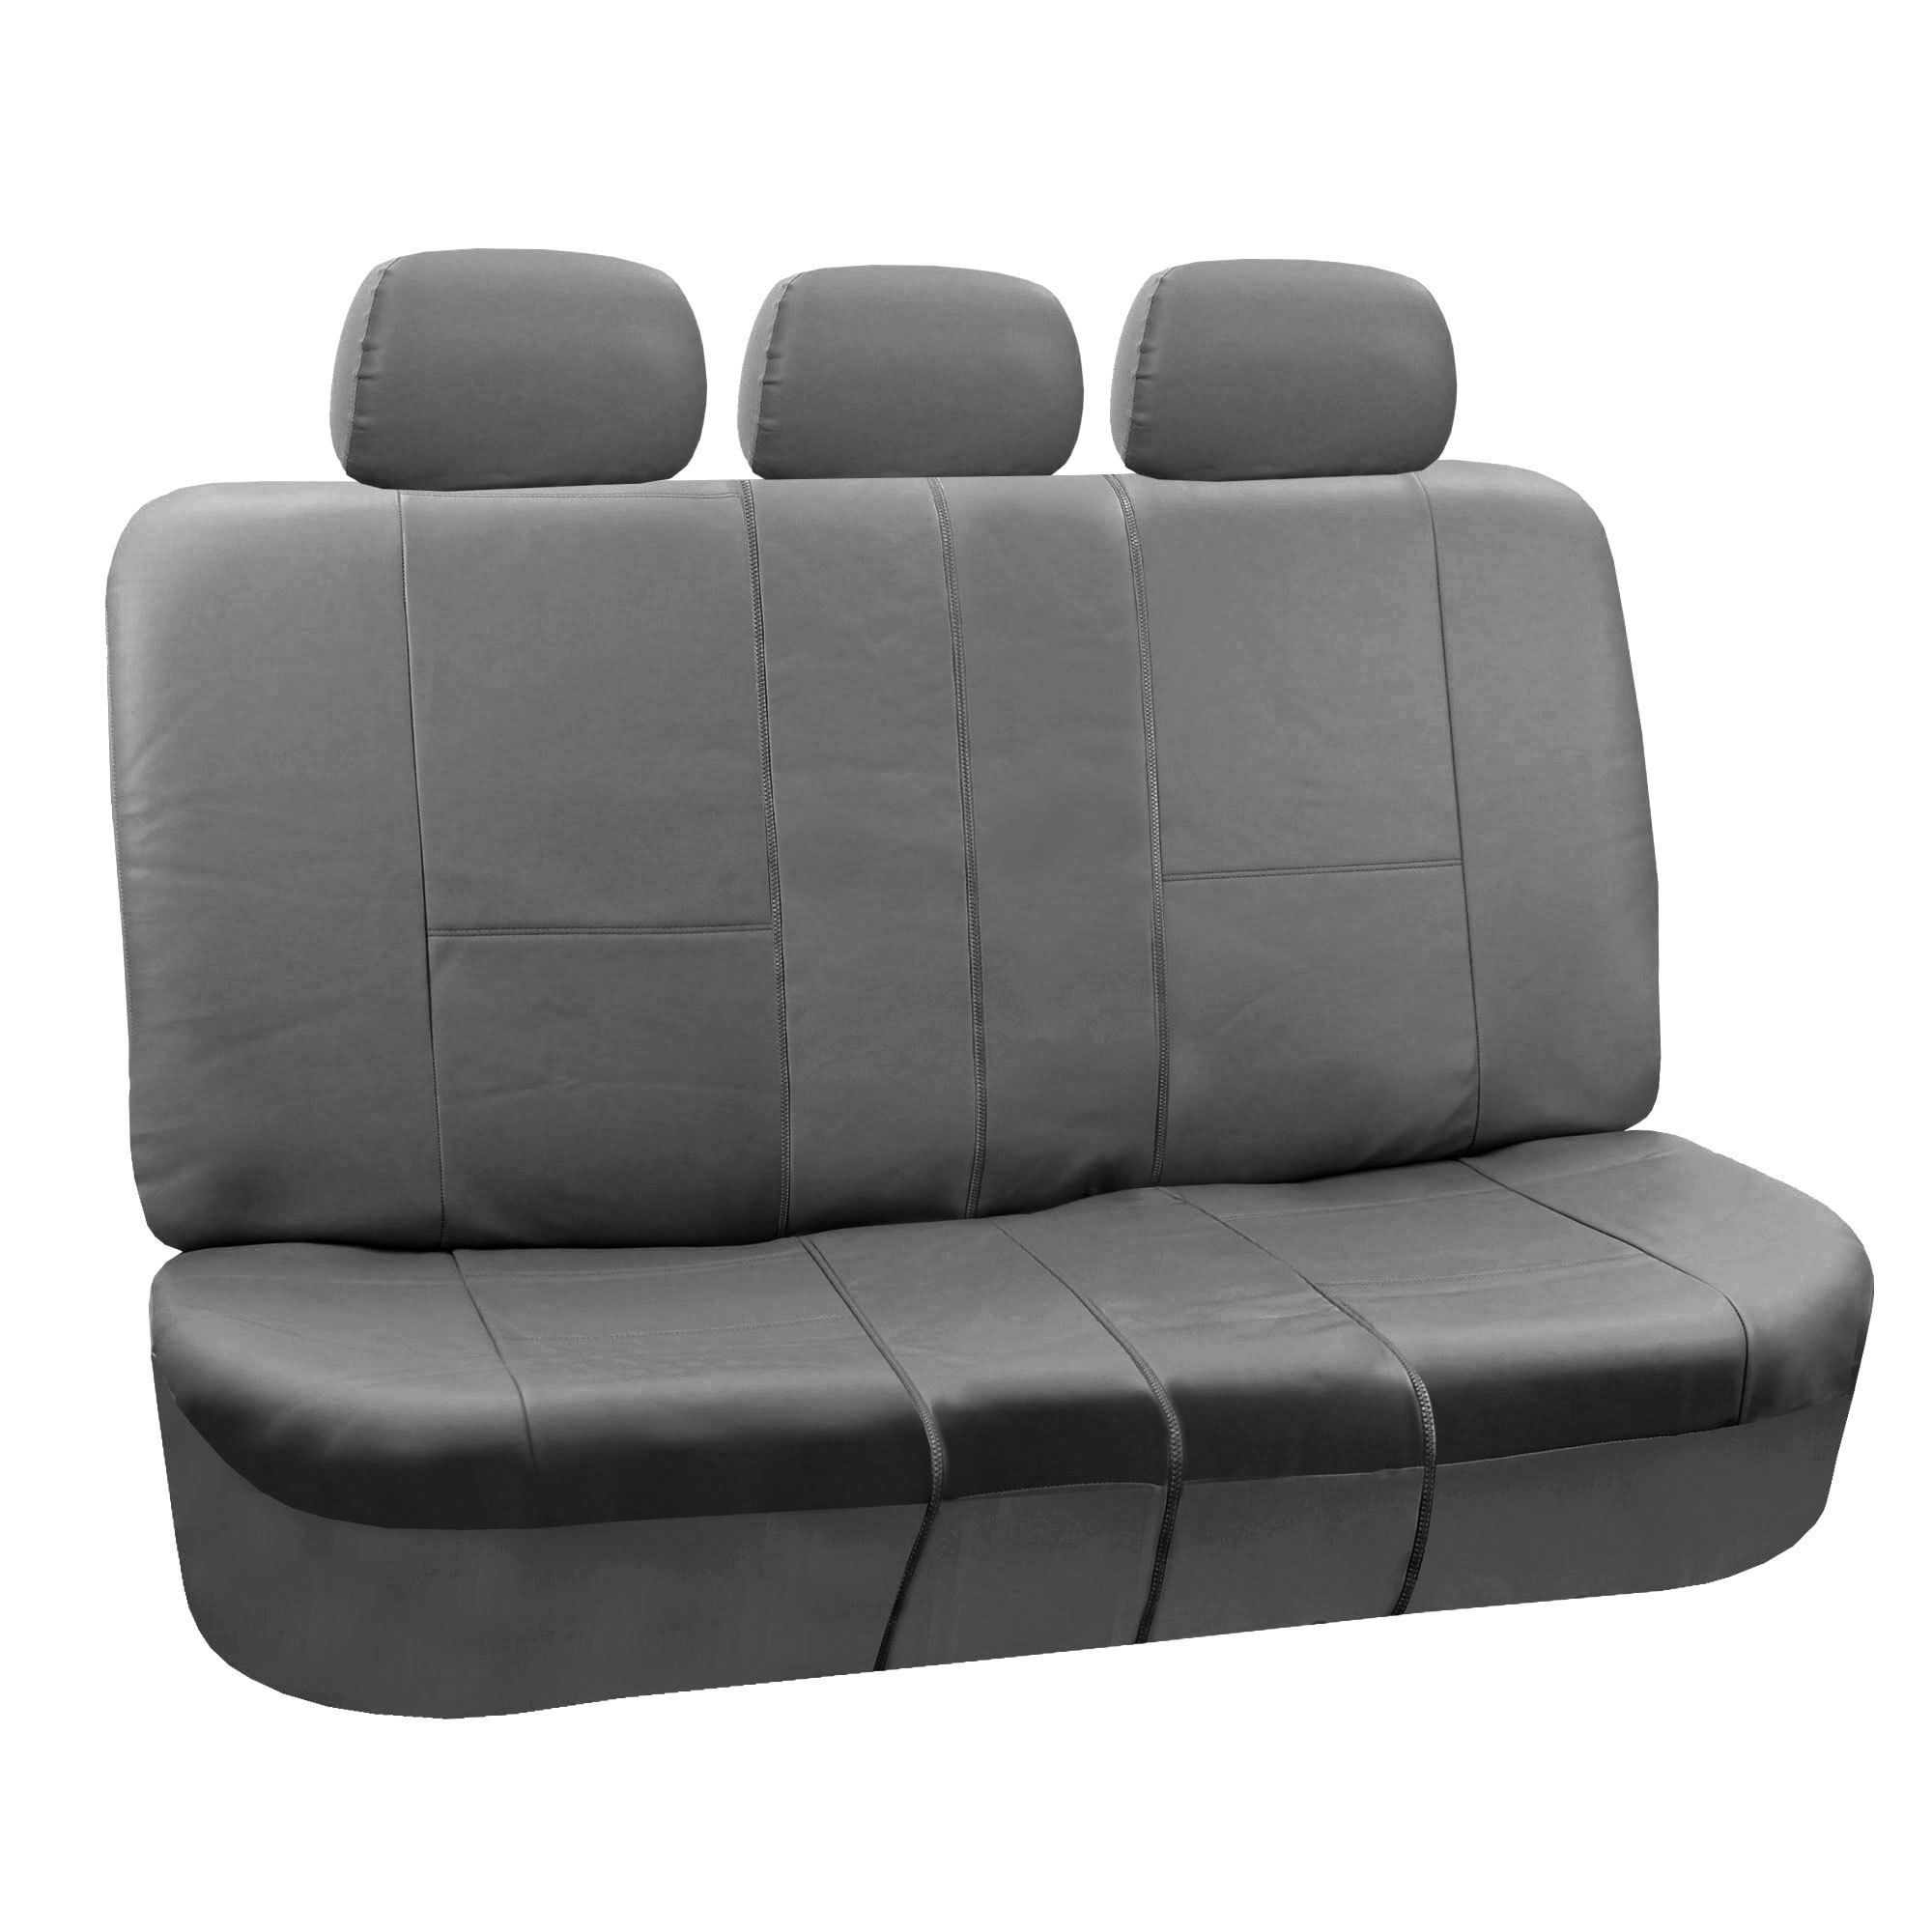 Amazing Fh Group Pu Split Bench Auto Seat Covers Products Gamerscity Chair Design For Home Gamerscityorg